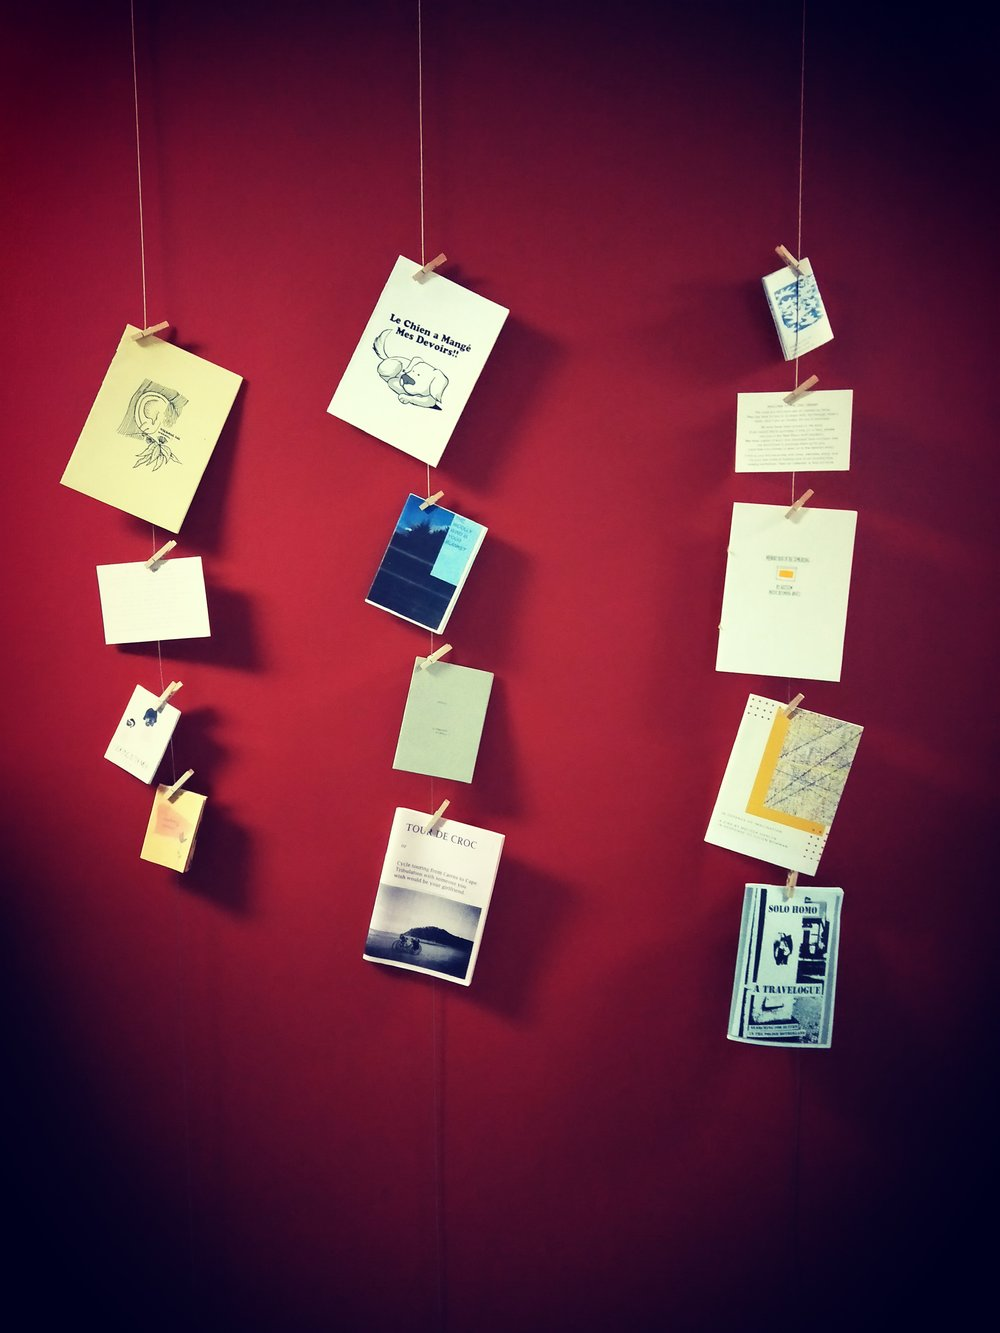 Some of my zines at New Moon community creative space in Lewisham. -